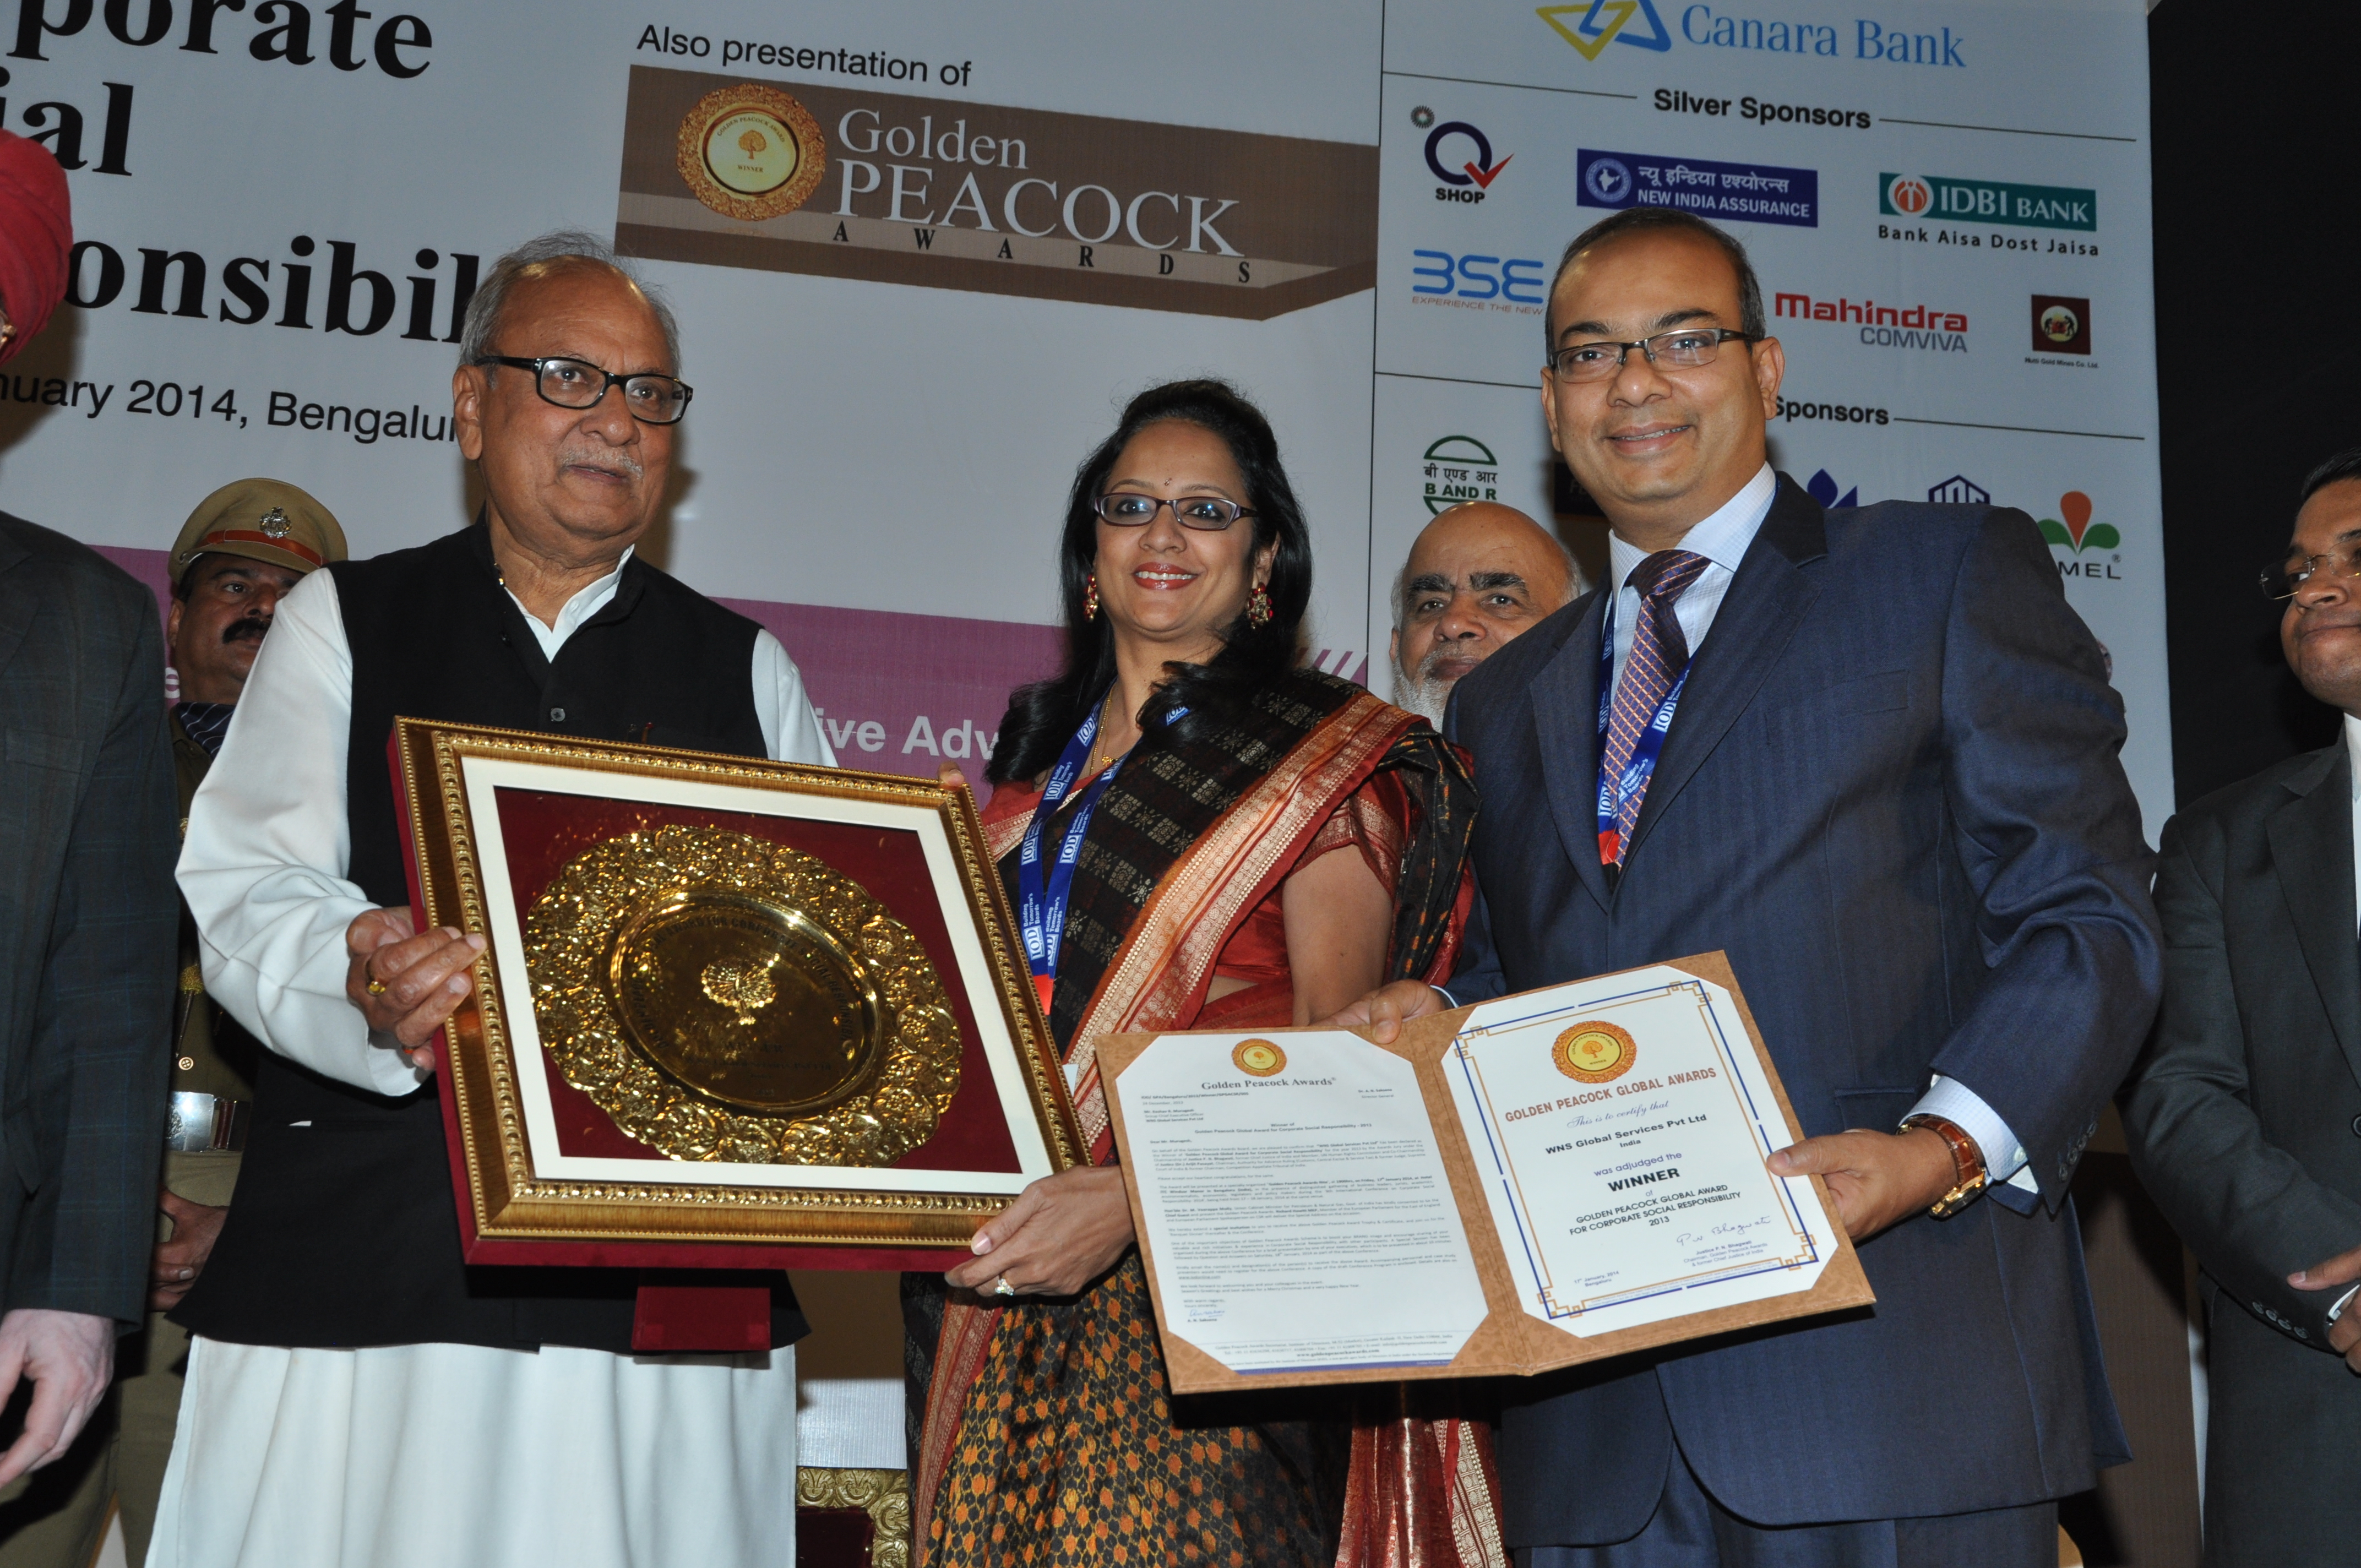 His Excellency Nikhil Kumar, Hon'ble Governor of Kerala giving the award to Keshav R. Murugesh, Group CEO WNS, and Shamini R. Murugesh, Honorary Chief Mentor WNS Cares Foundation at the 8th International Conference on Corporate Social Responsibility held at Hotel ITC Windsor Manor in Bengaluru, India (Photo: Business Wire)